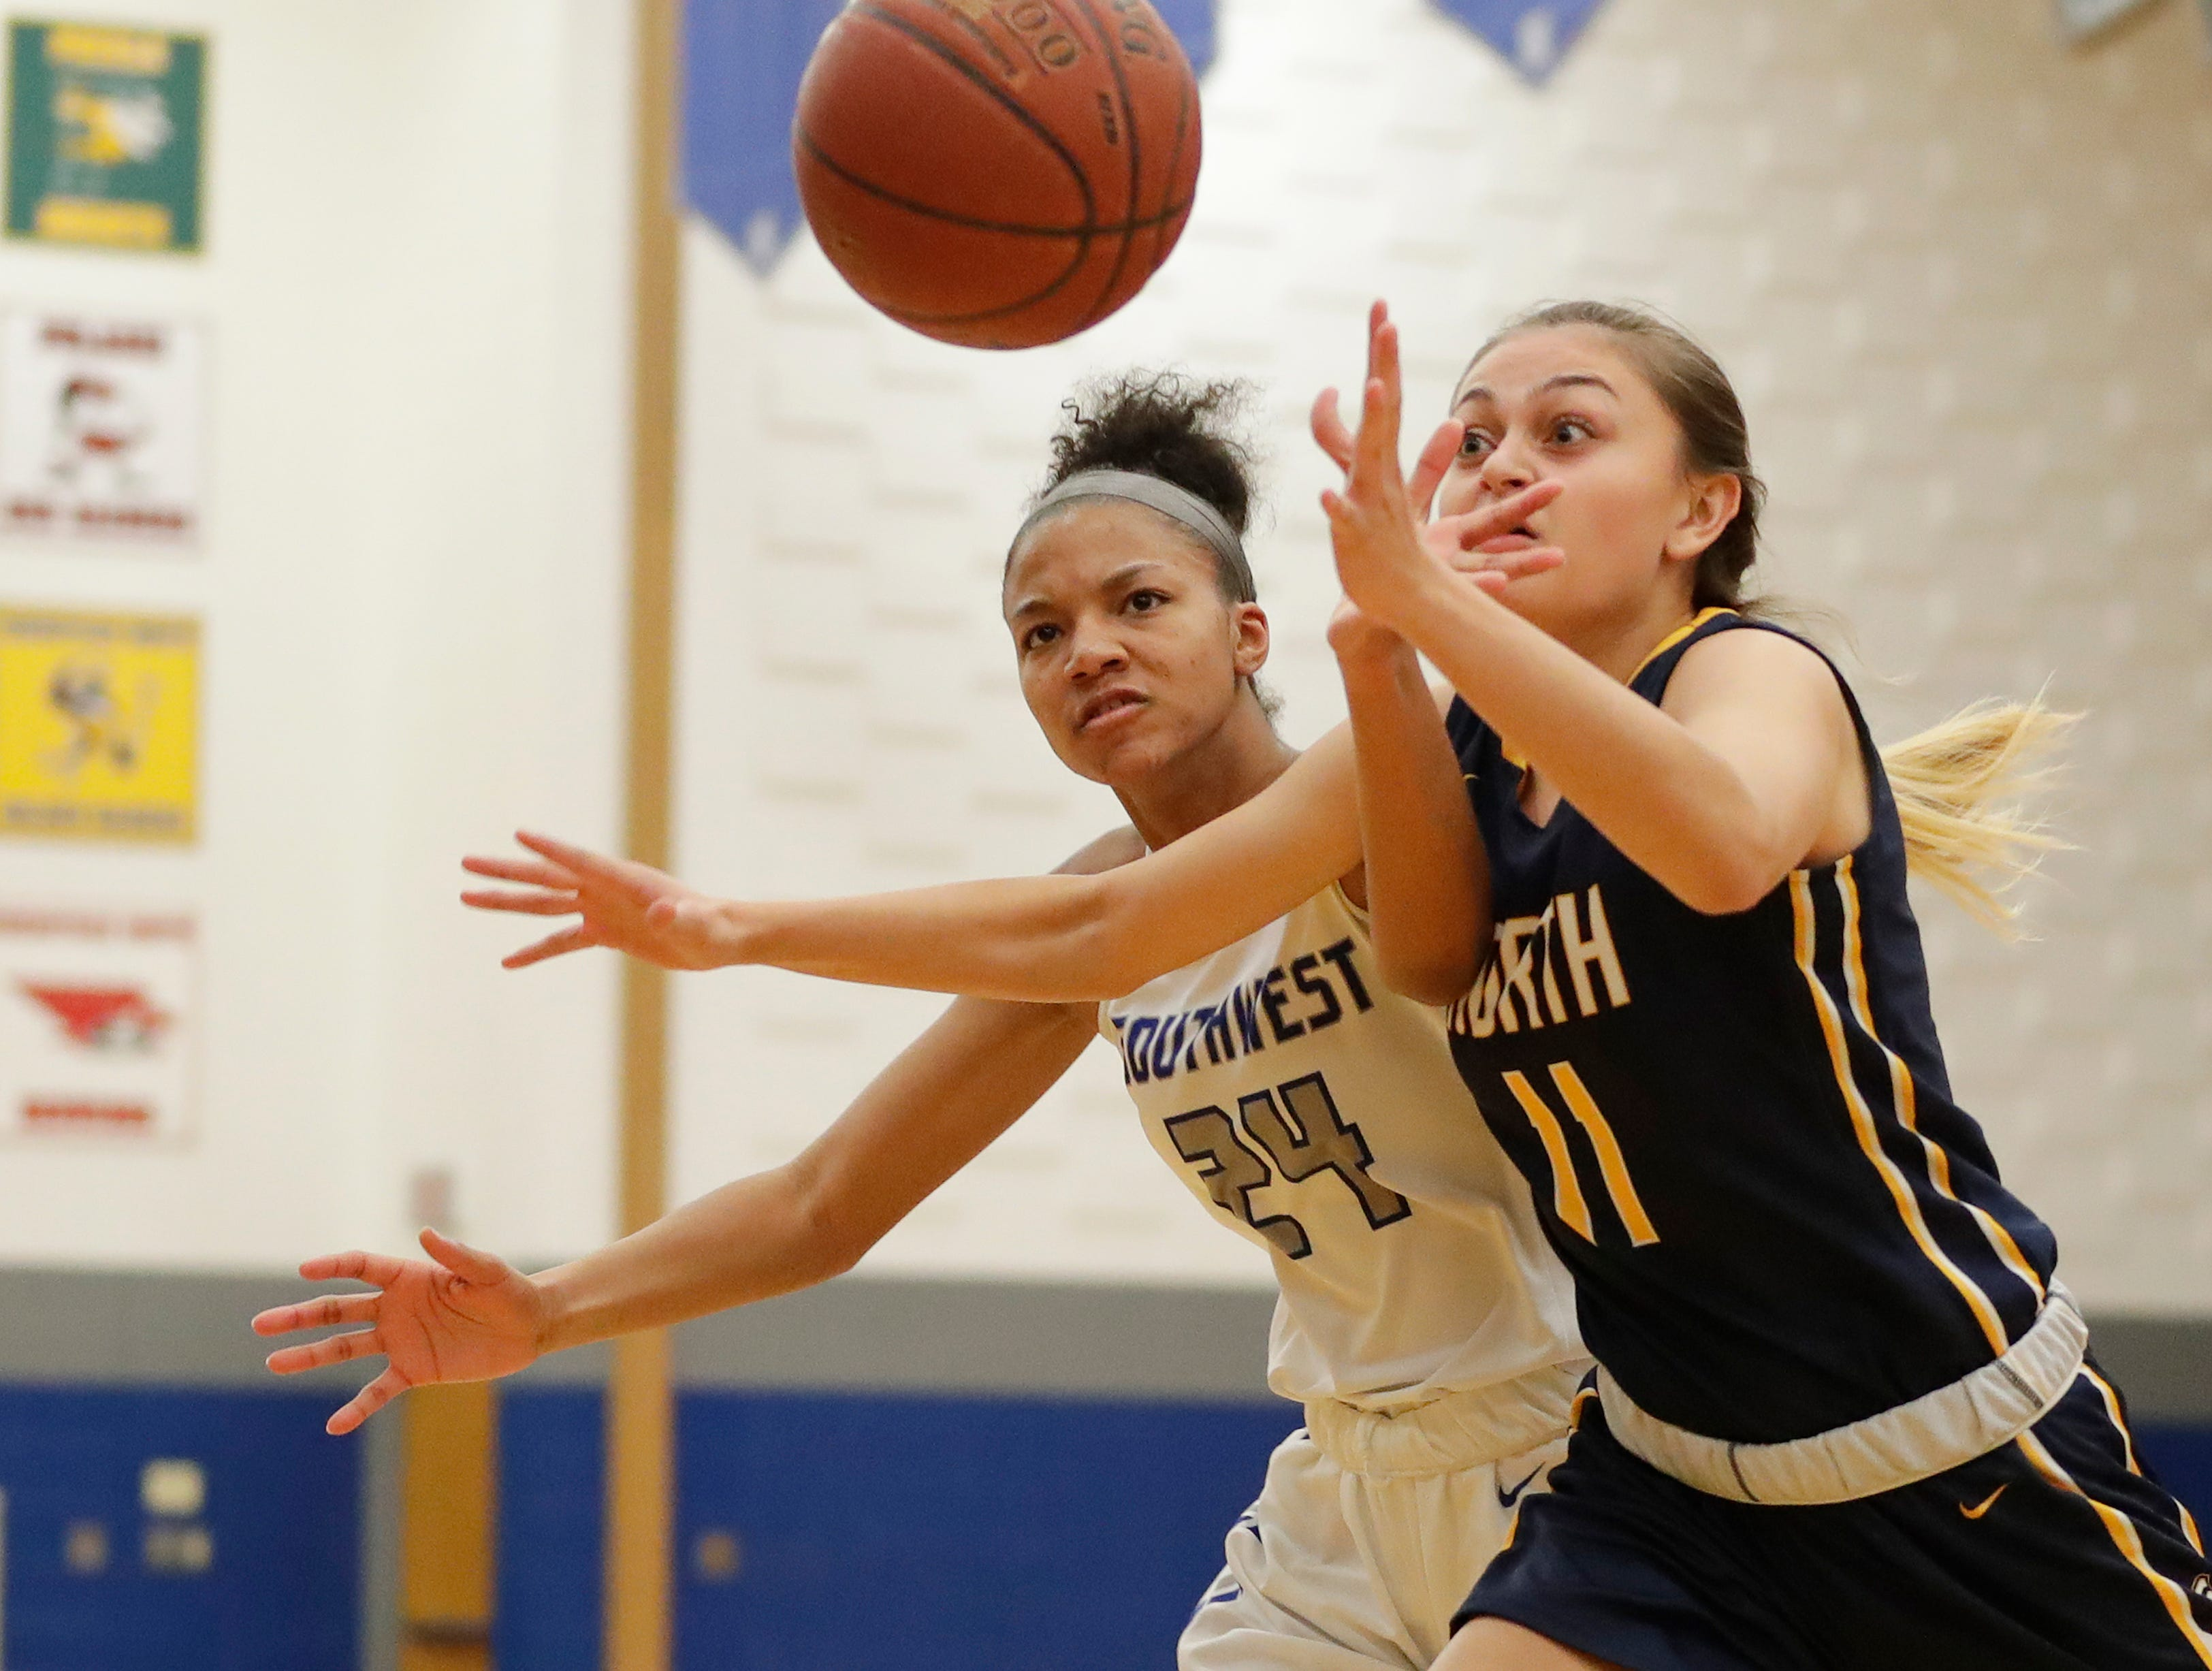 Green Bay Southwest's Jahzmeen Jackson (24) runs after a loose ball against Sheboygan North's Alycia Herr (11) in a girls basketball game at Southwest High School on Tuesday, February 5, 2019 in Green Bay, Wis.